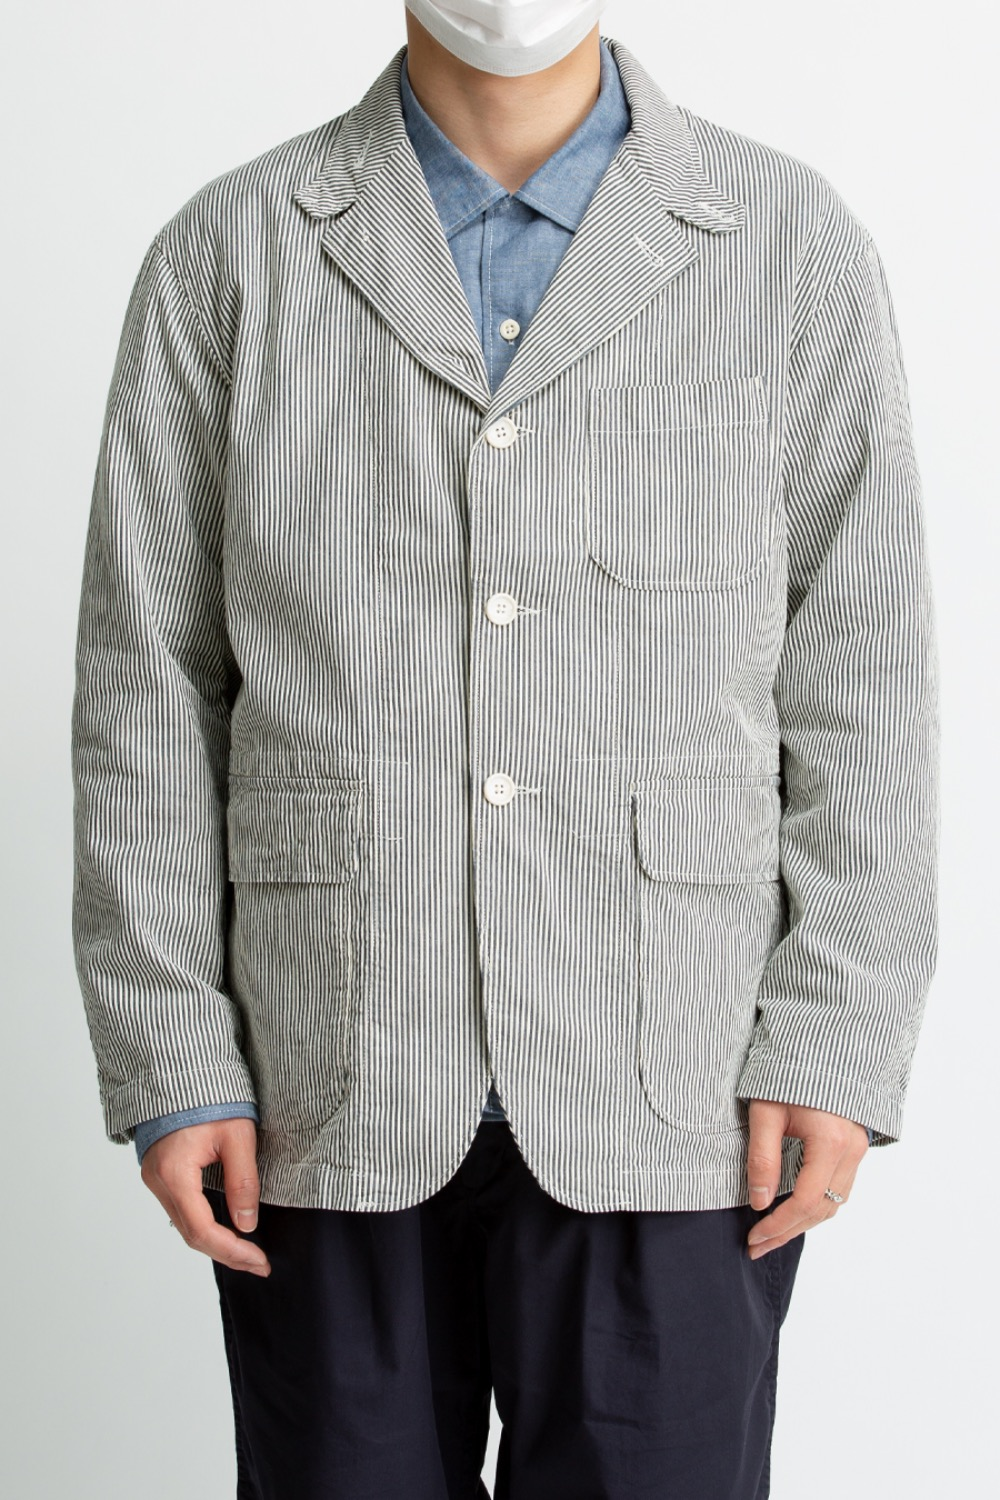 LOITER JACKET NAVY SEERSUCKER STRIPE